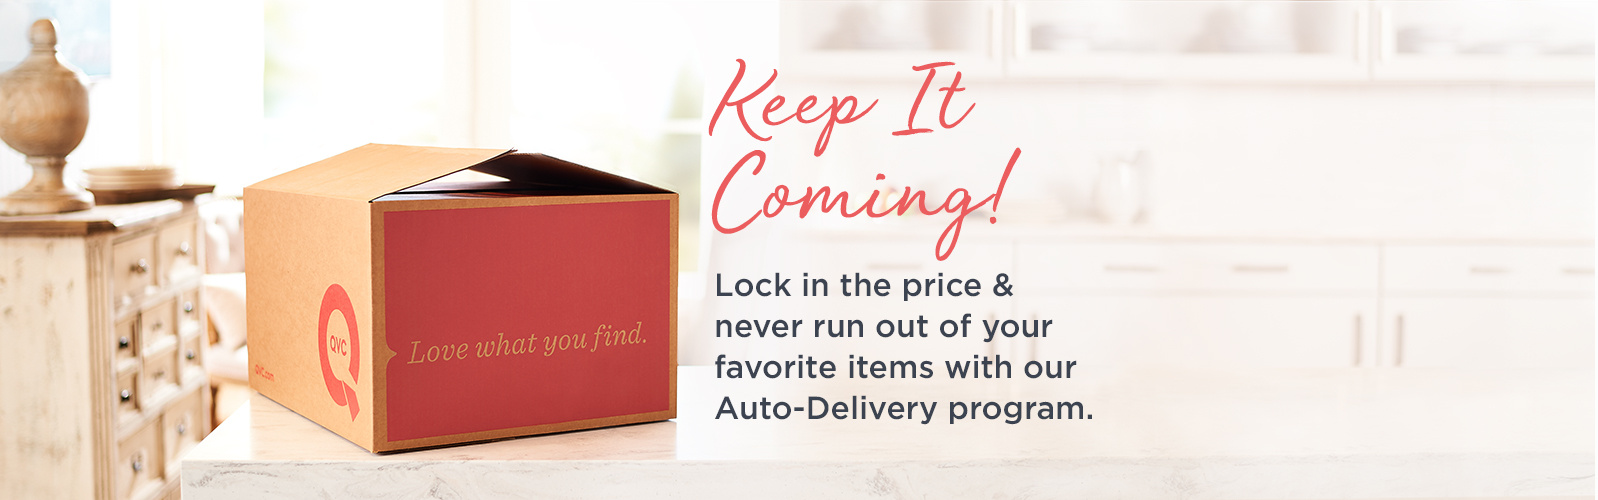 Keep It Coming!  Lock in the price paid & never run out of your favorite items with our Auto-Delivery program.